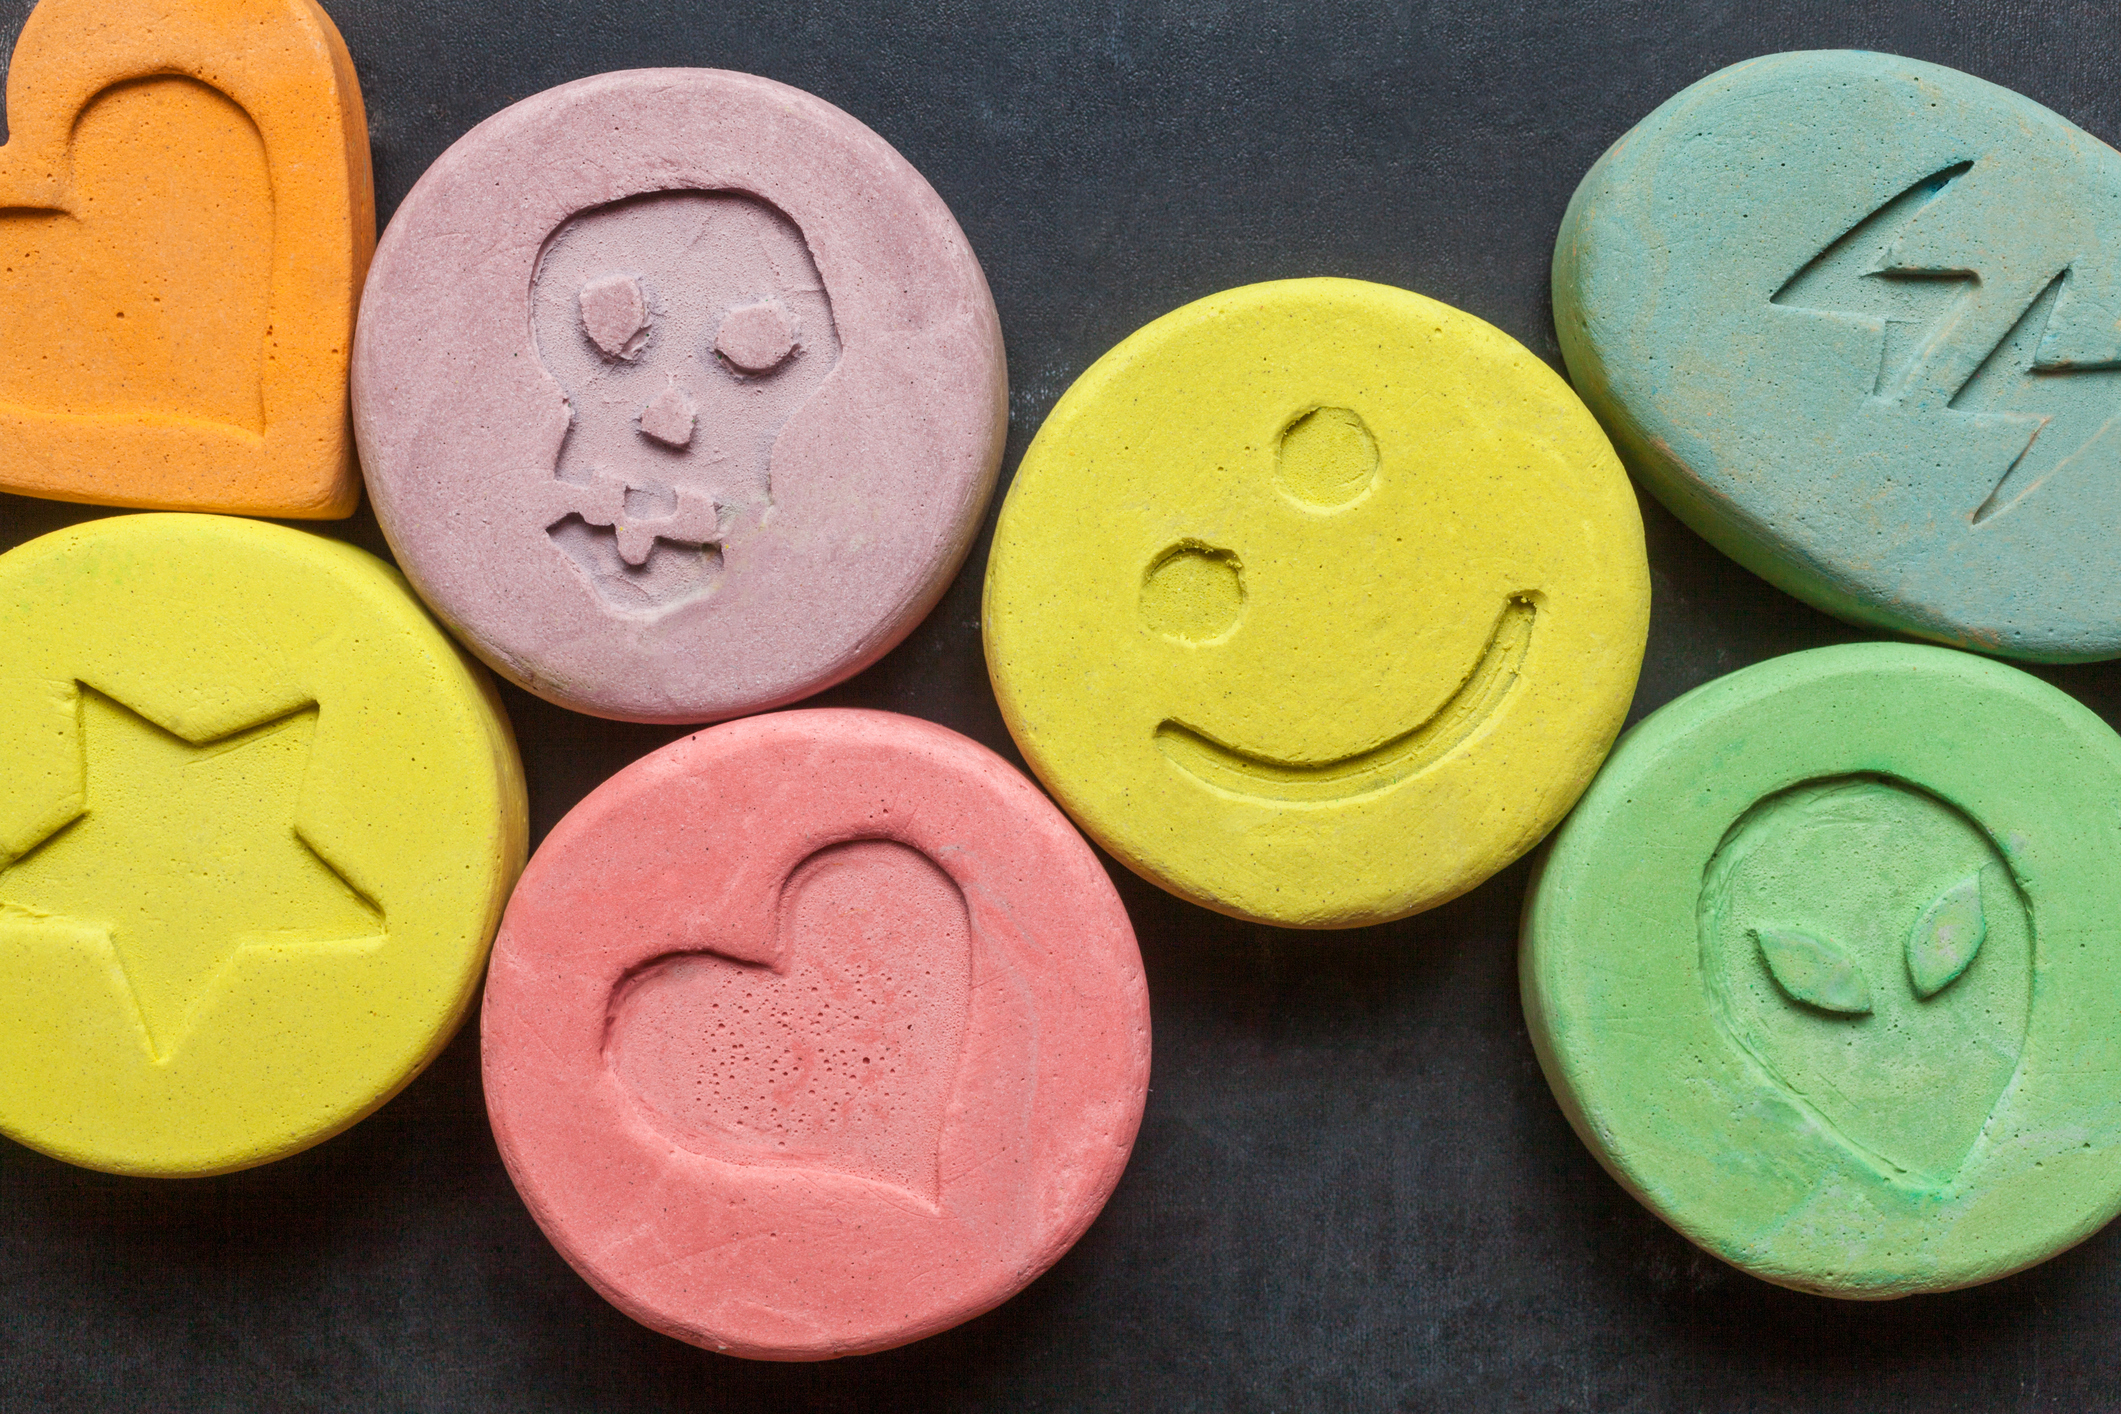 The Hangover From MDMA Skips a Day - VICE